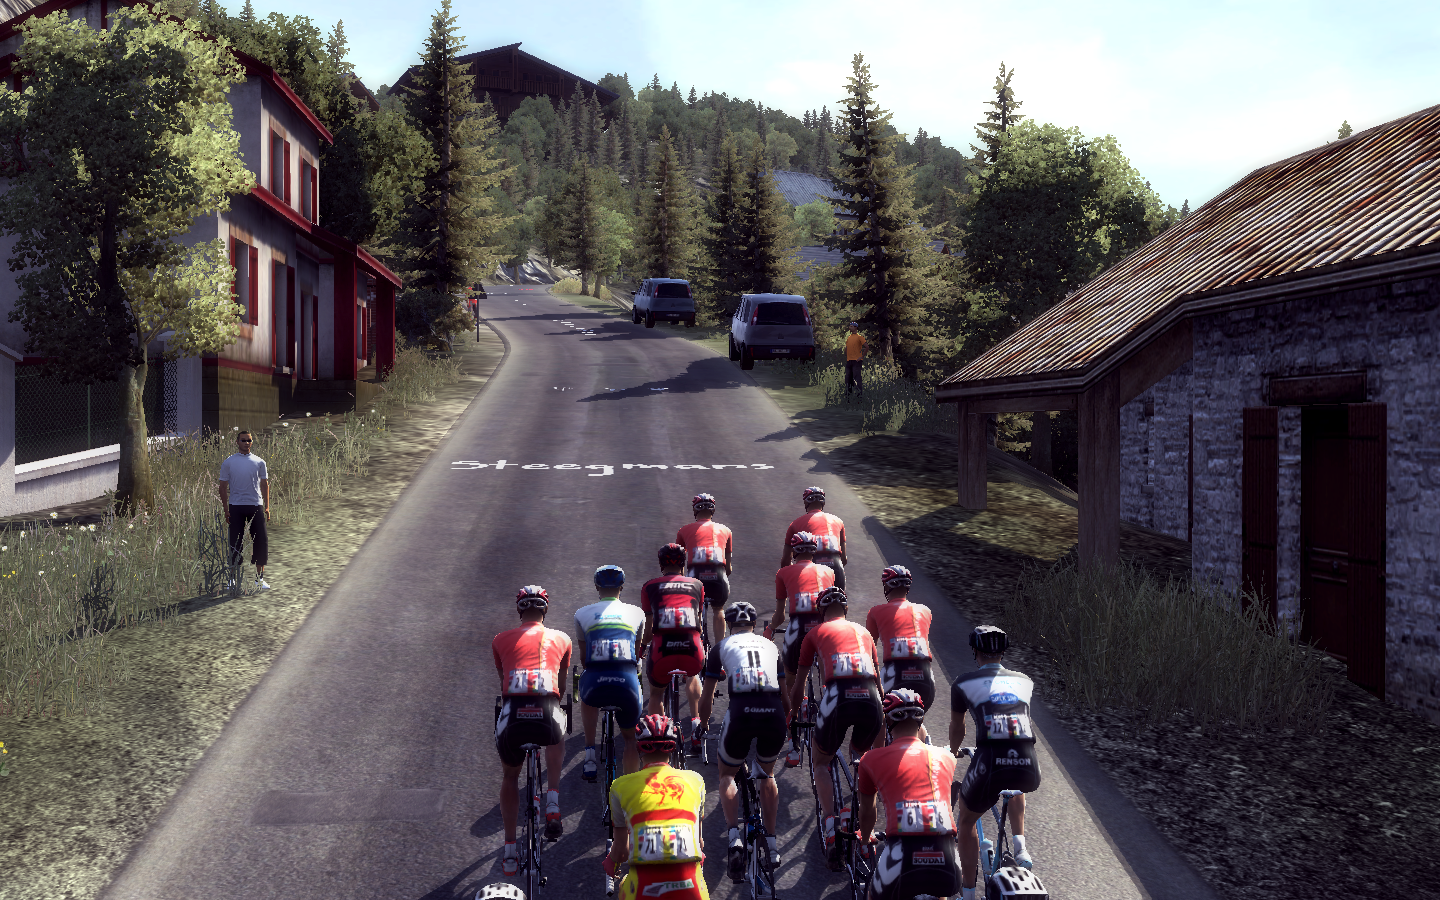 Stages ricardo123 - MSR 2014 (update) + 2 more Oqmagy